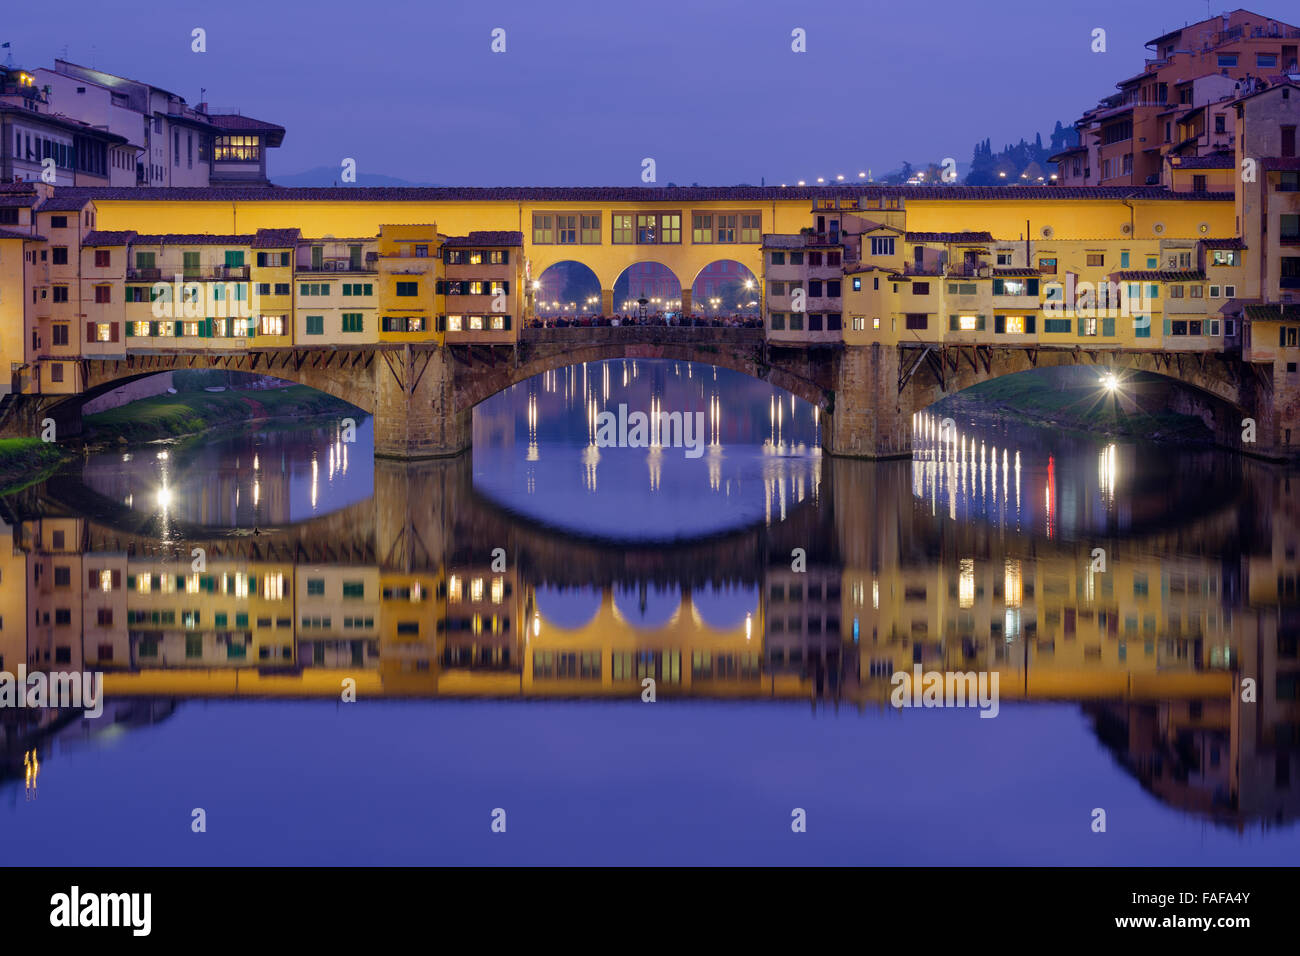 Ponte Vecchio over the Arno with symmetrical reflection in water, Blue Hour, Florence, Tuscany, Italy - Stock Image